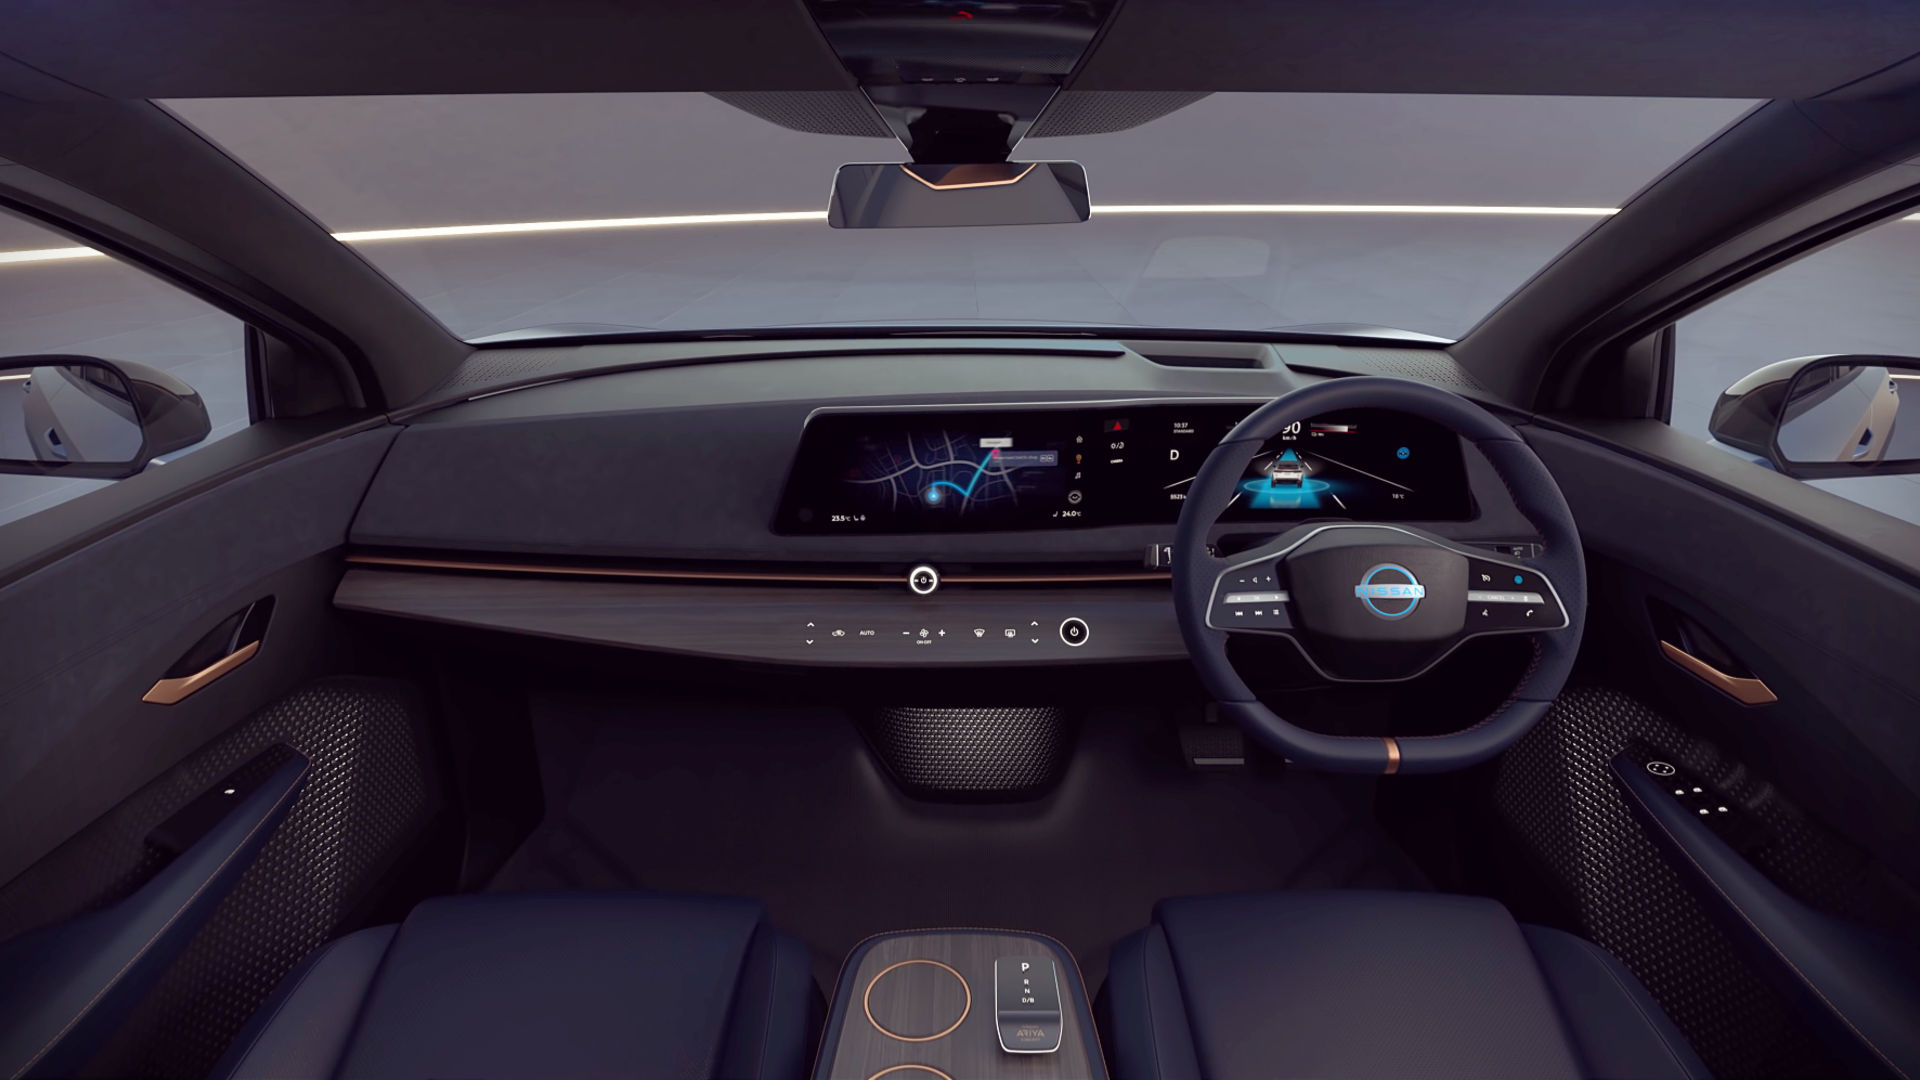 Nissan Ariya Concept Interior Wallpaper